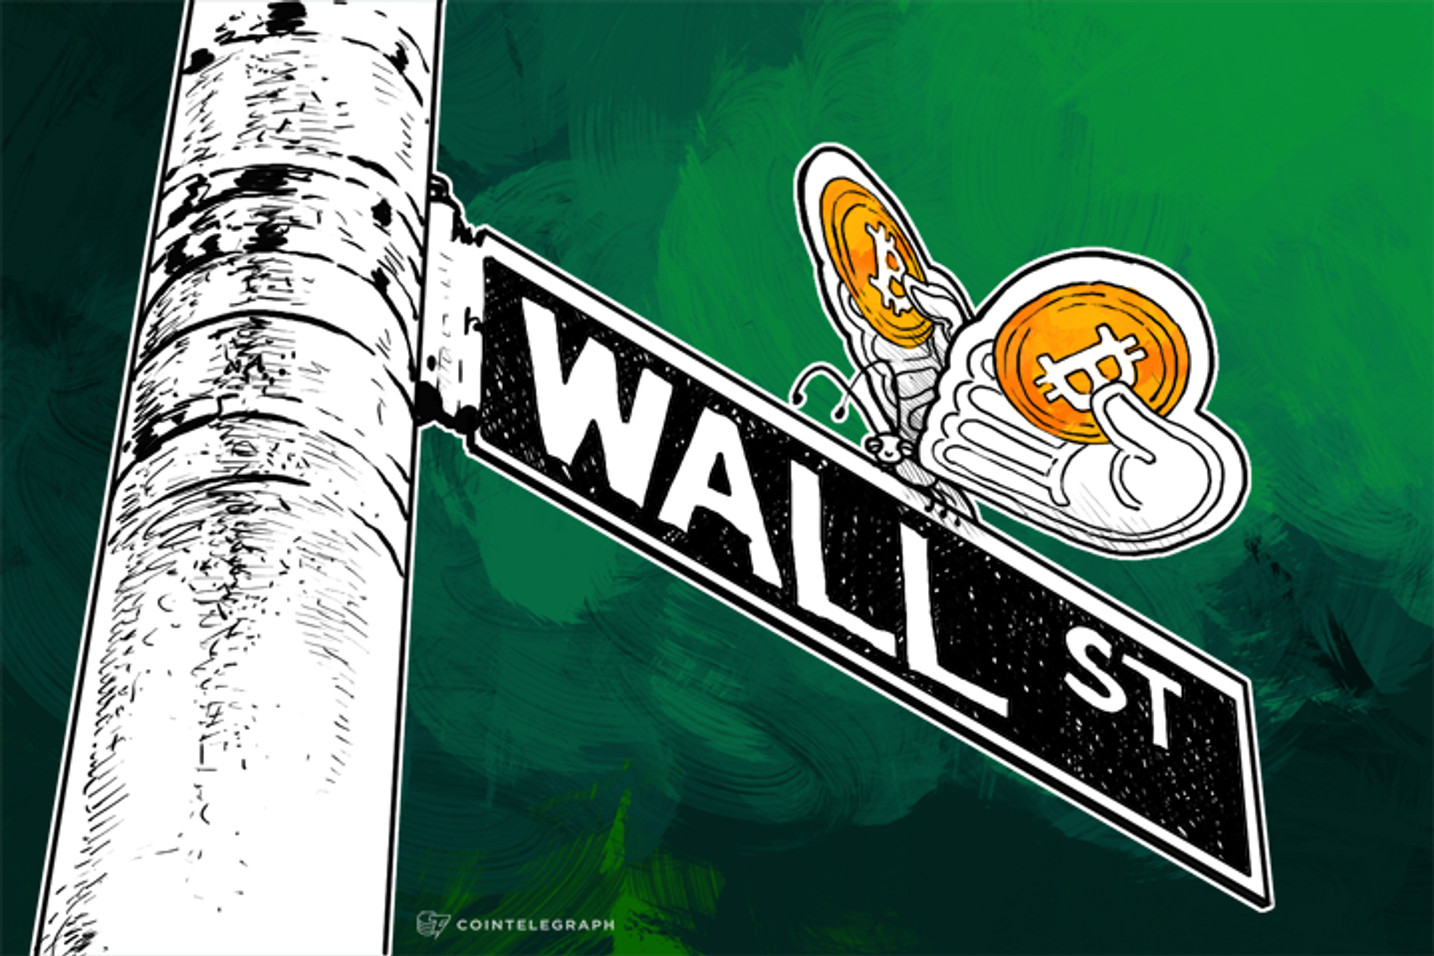 Wall Street Firm Announces Landmark Partnership with Bitcoin Company, Buttercoin